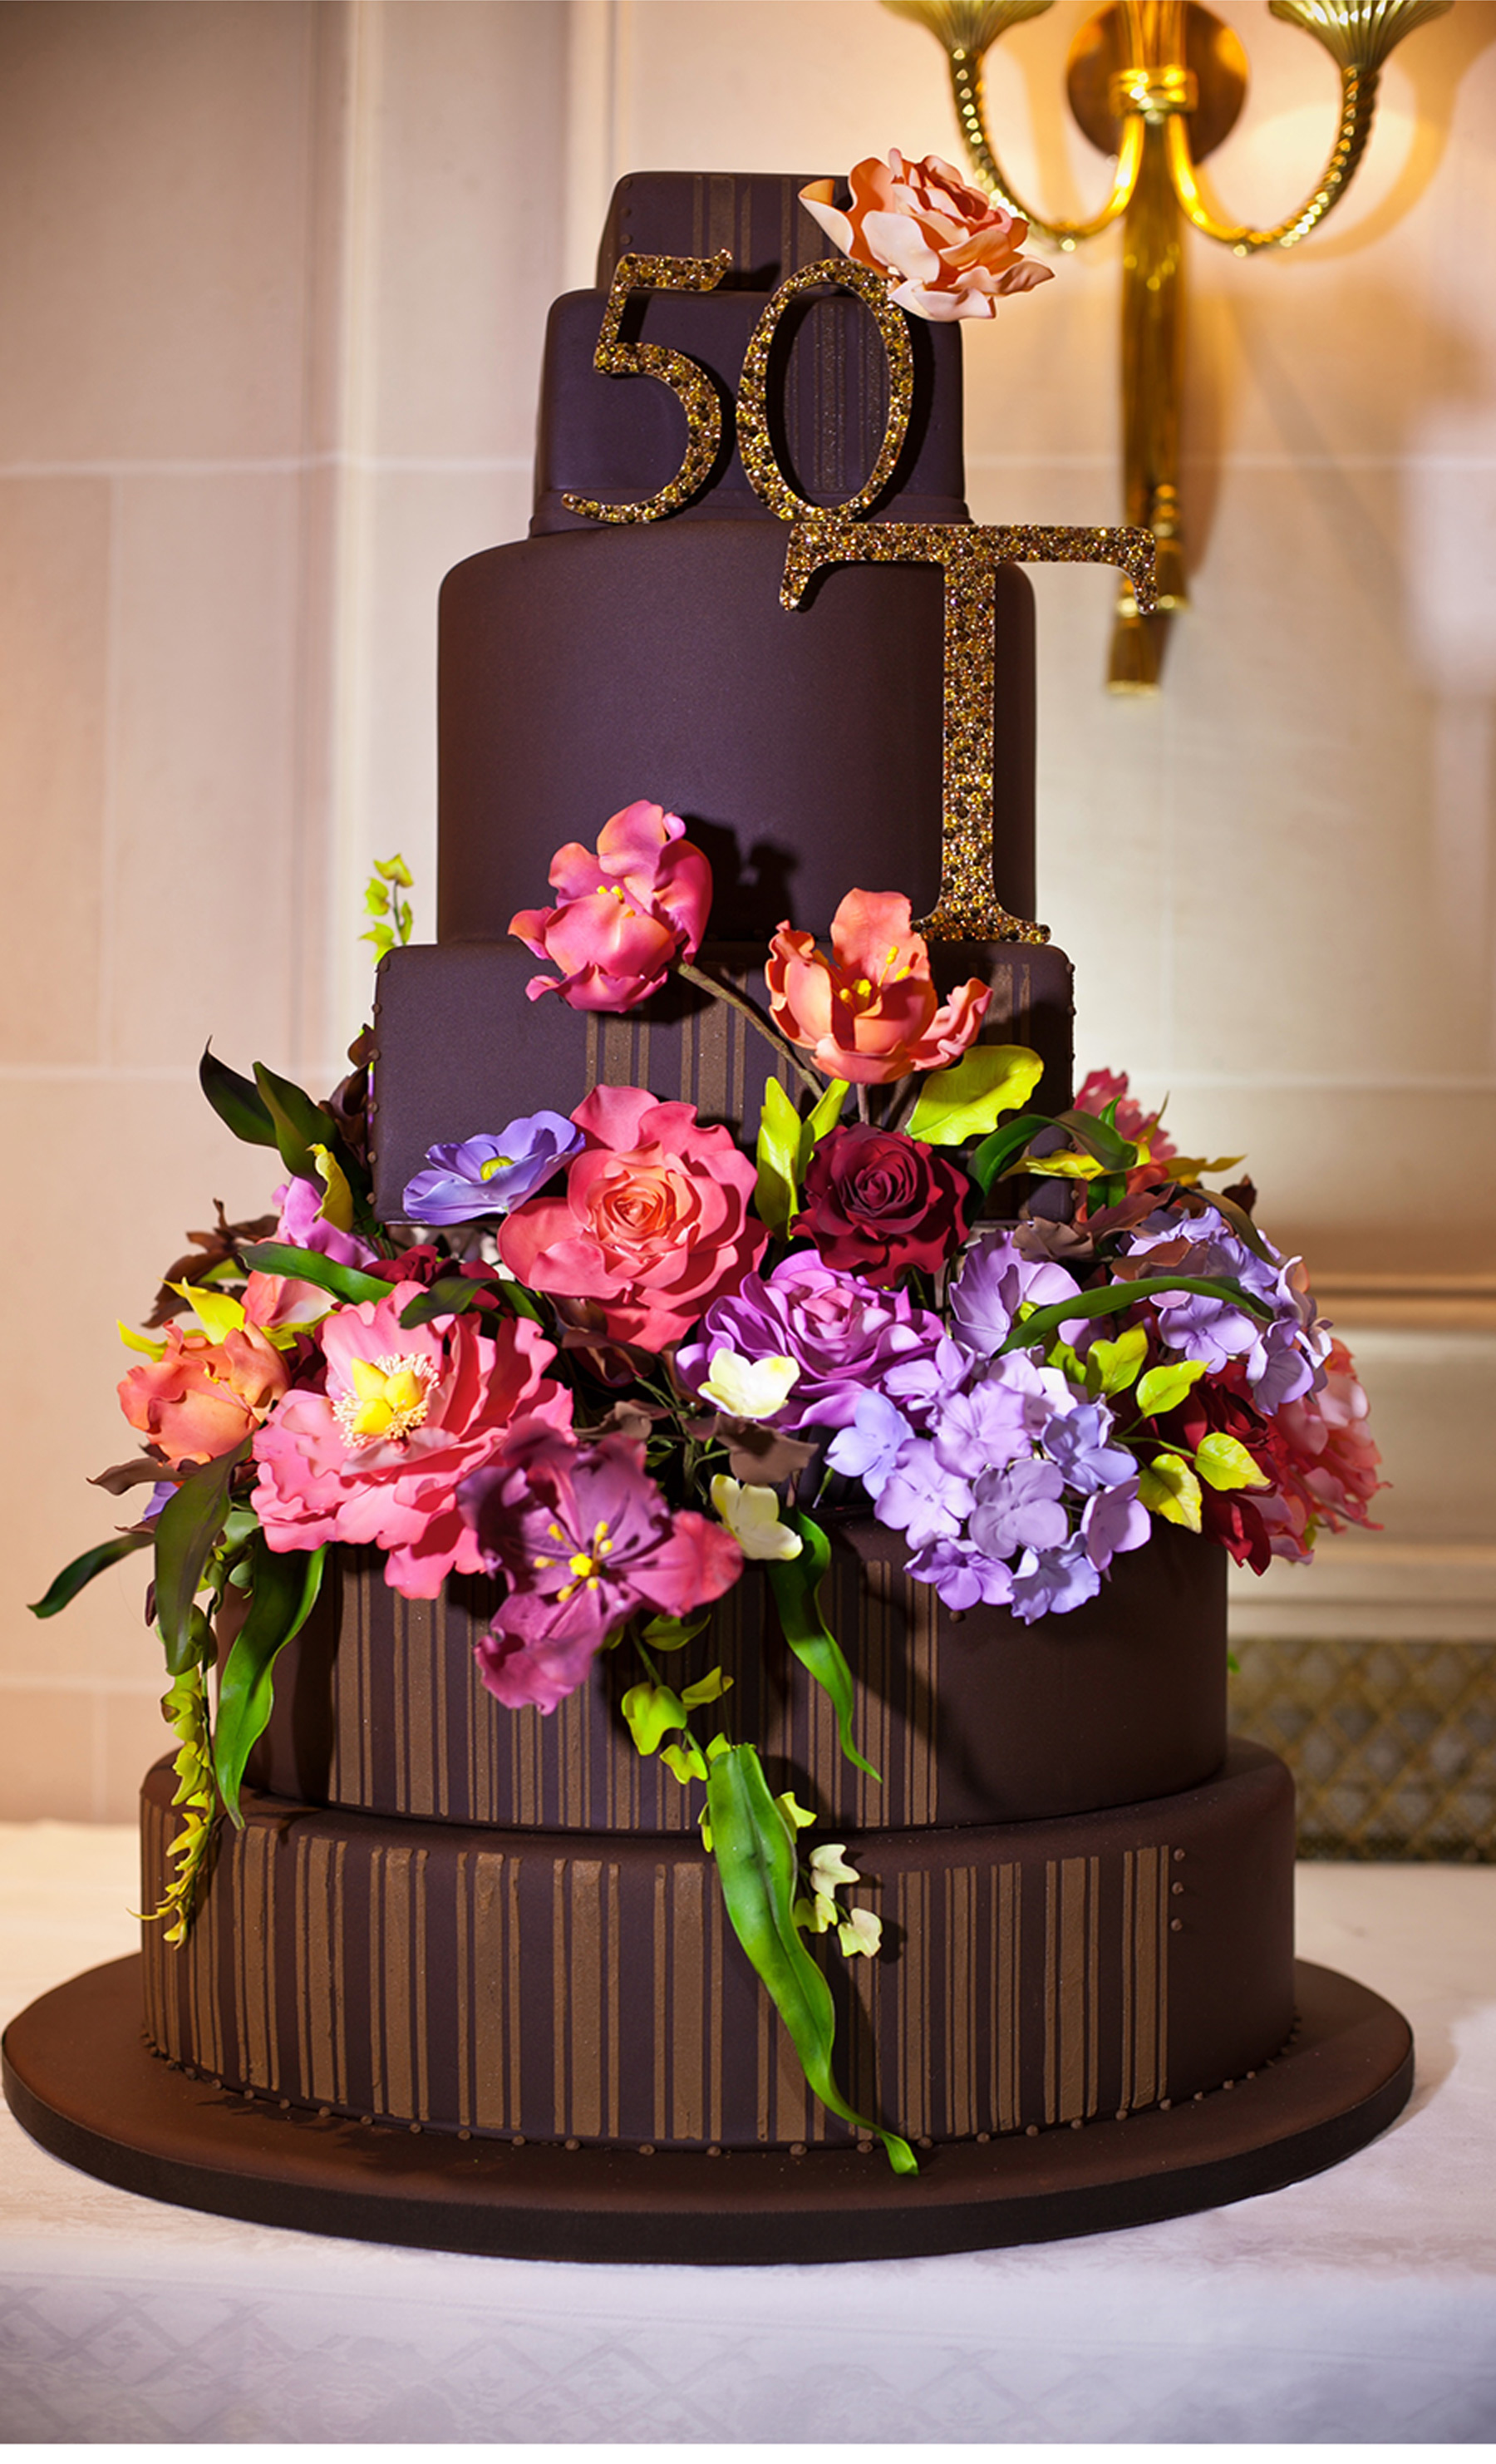 Our Muse - Paris Luxury Wedding - Be inspired by Lucas and Thierry's luxurious Paris wedding set in shades of elegant purple and gold - lucas somoza, wedding, cake, ceci new york, purple, gold, paris